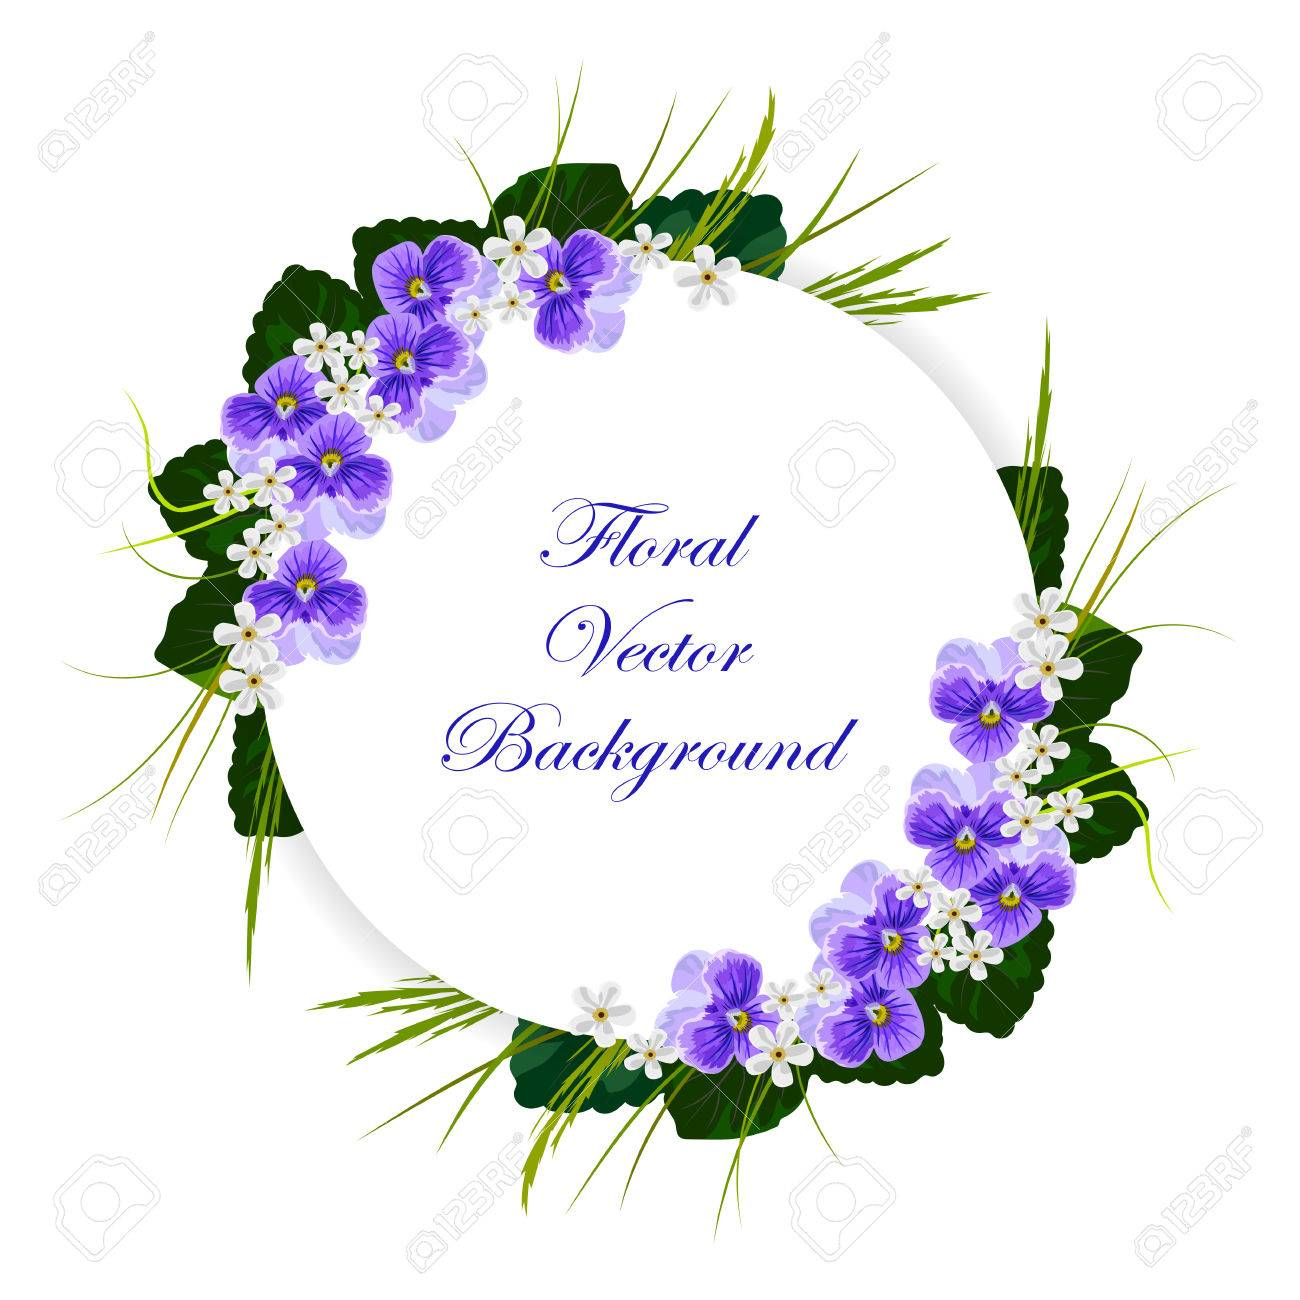 Floral Vector Background Composition Of Violets White Flowers